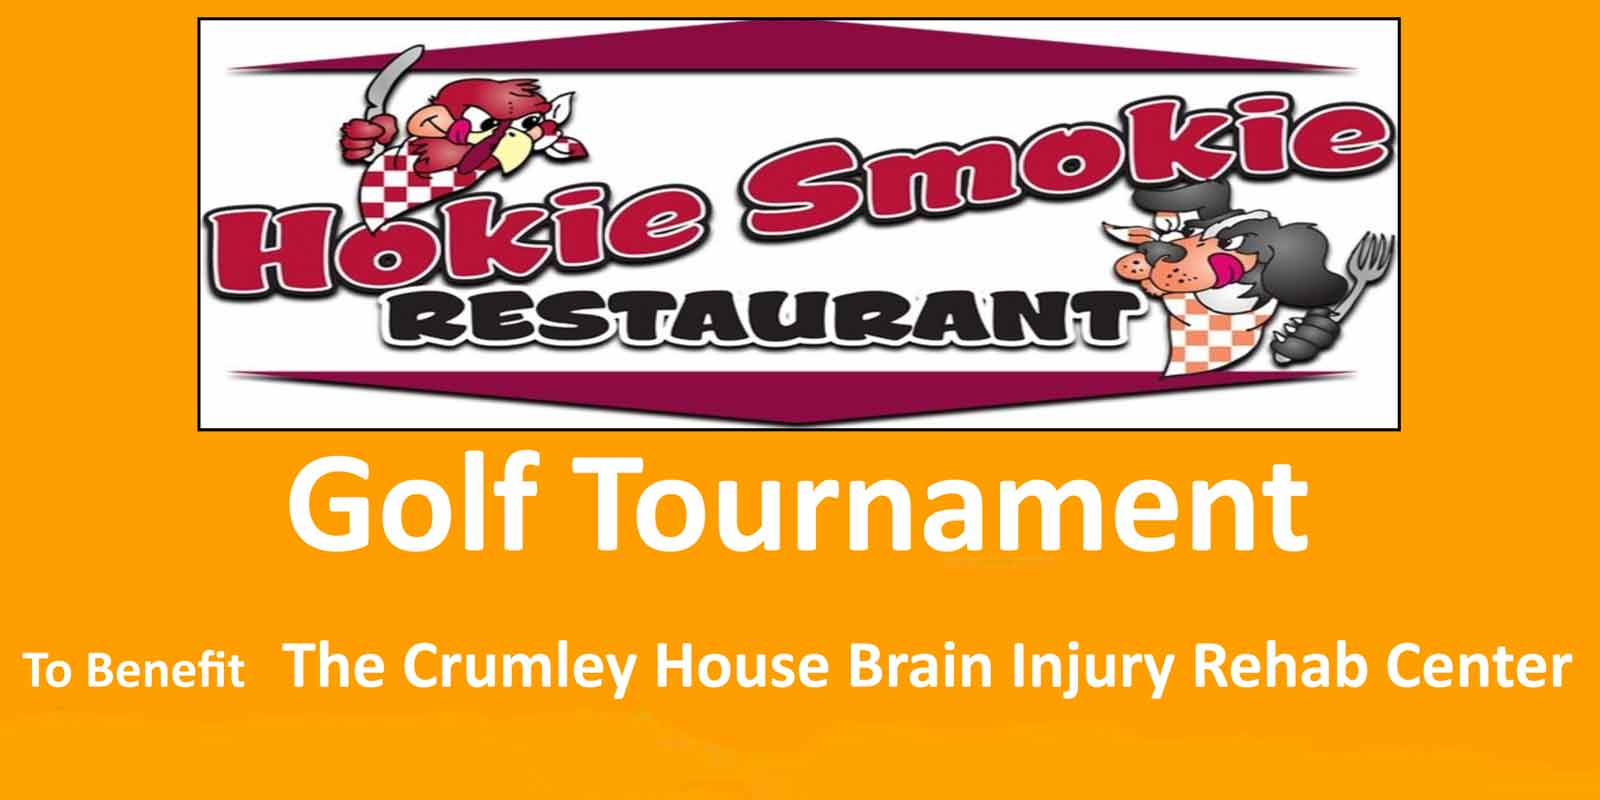 2016 Hokie Smokie Restaurant Golf Tournament to Benefit The Crumley House